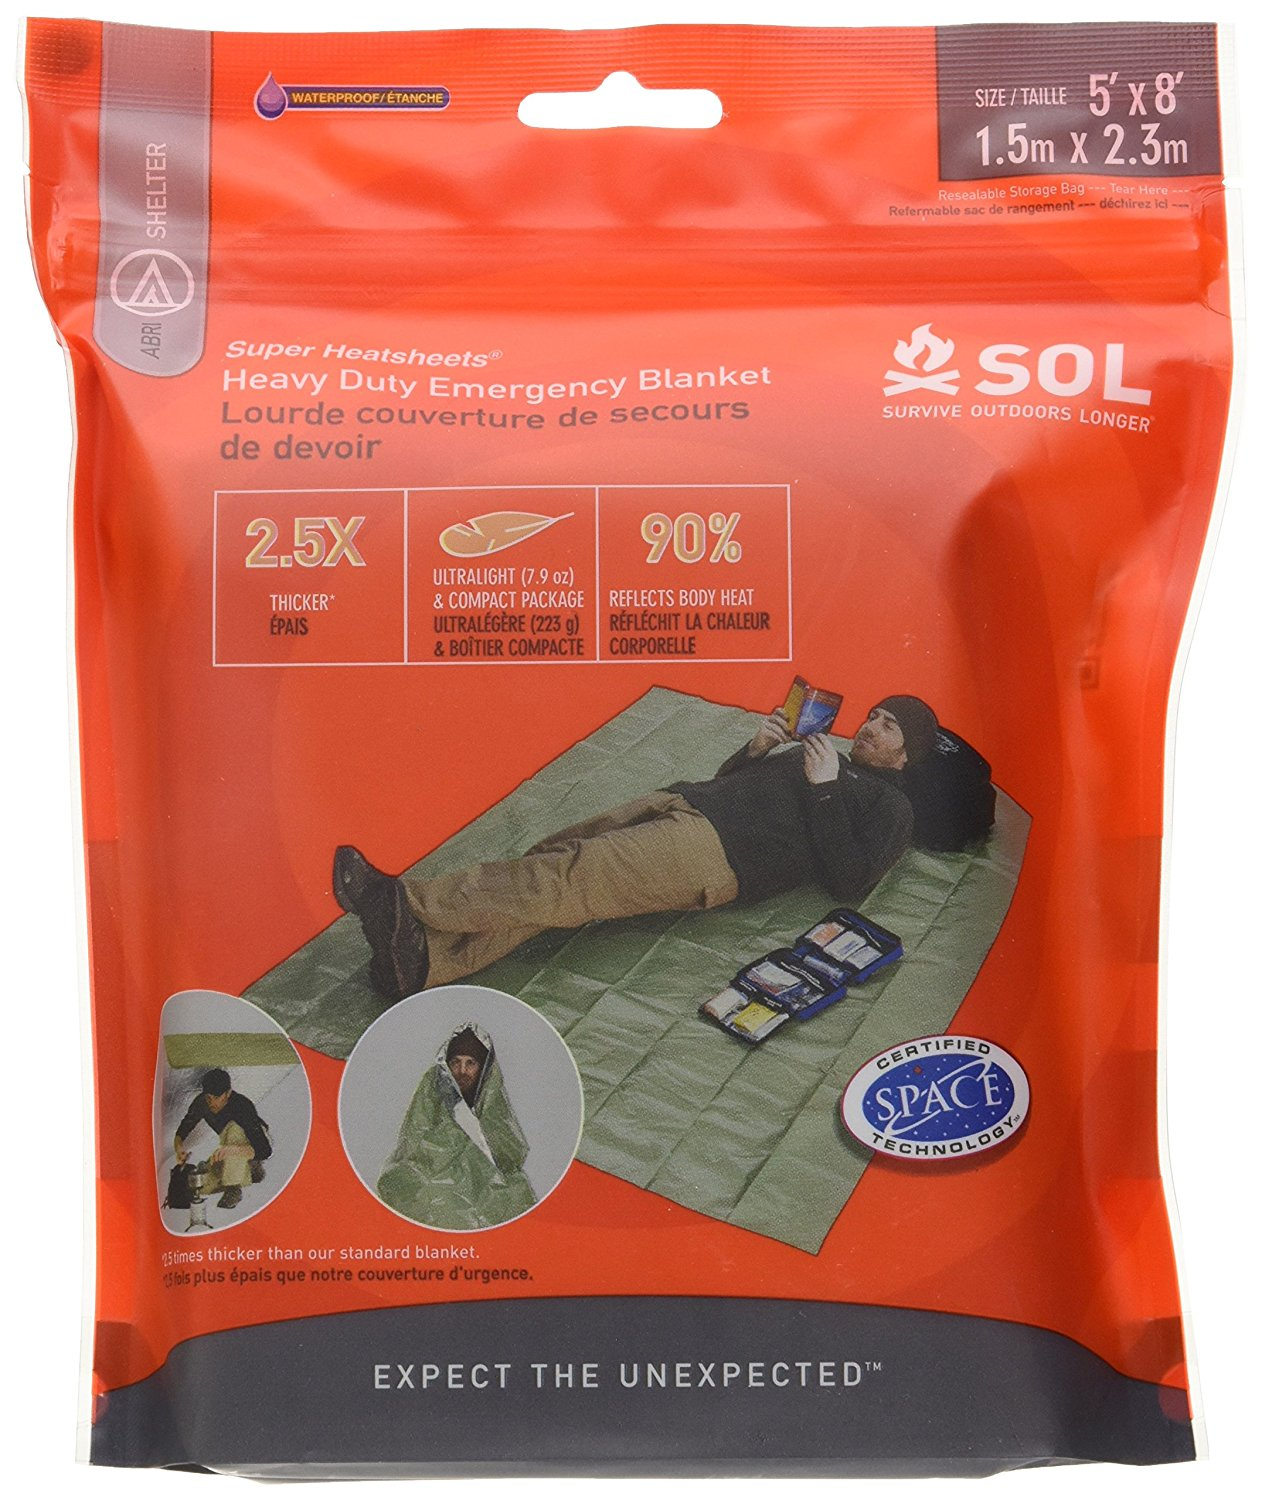 Adventure Medical Kits S. O. L. Heavy Duty Emergency Blanket, SURVIVAL Heavy ESSENTIALS Blackhawk VAS SACK BOB Back BLACK First Hospital... by